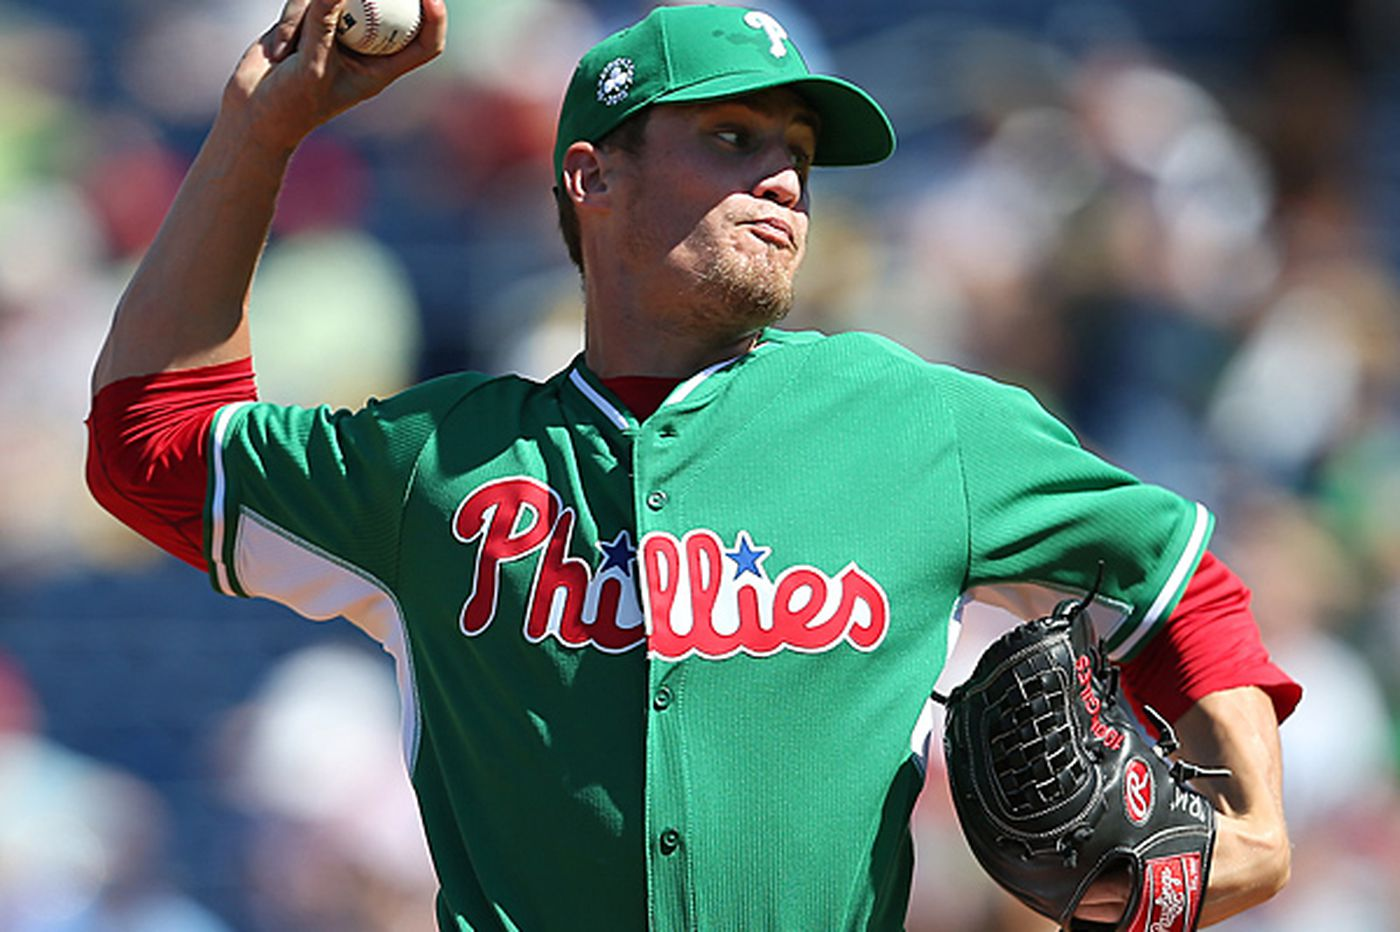 Phillies' bullpen strikingly strong